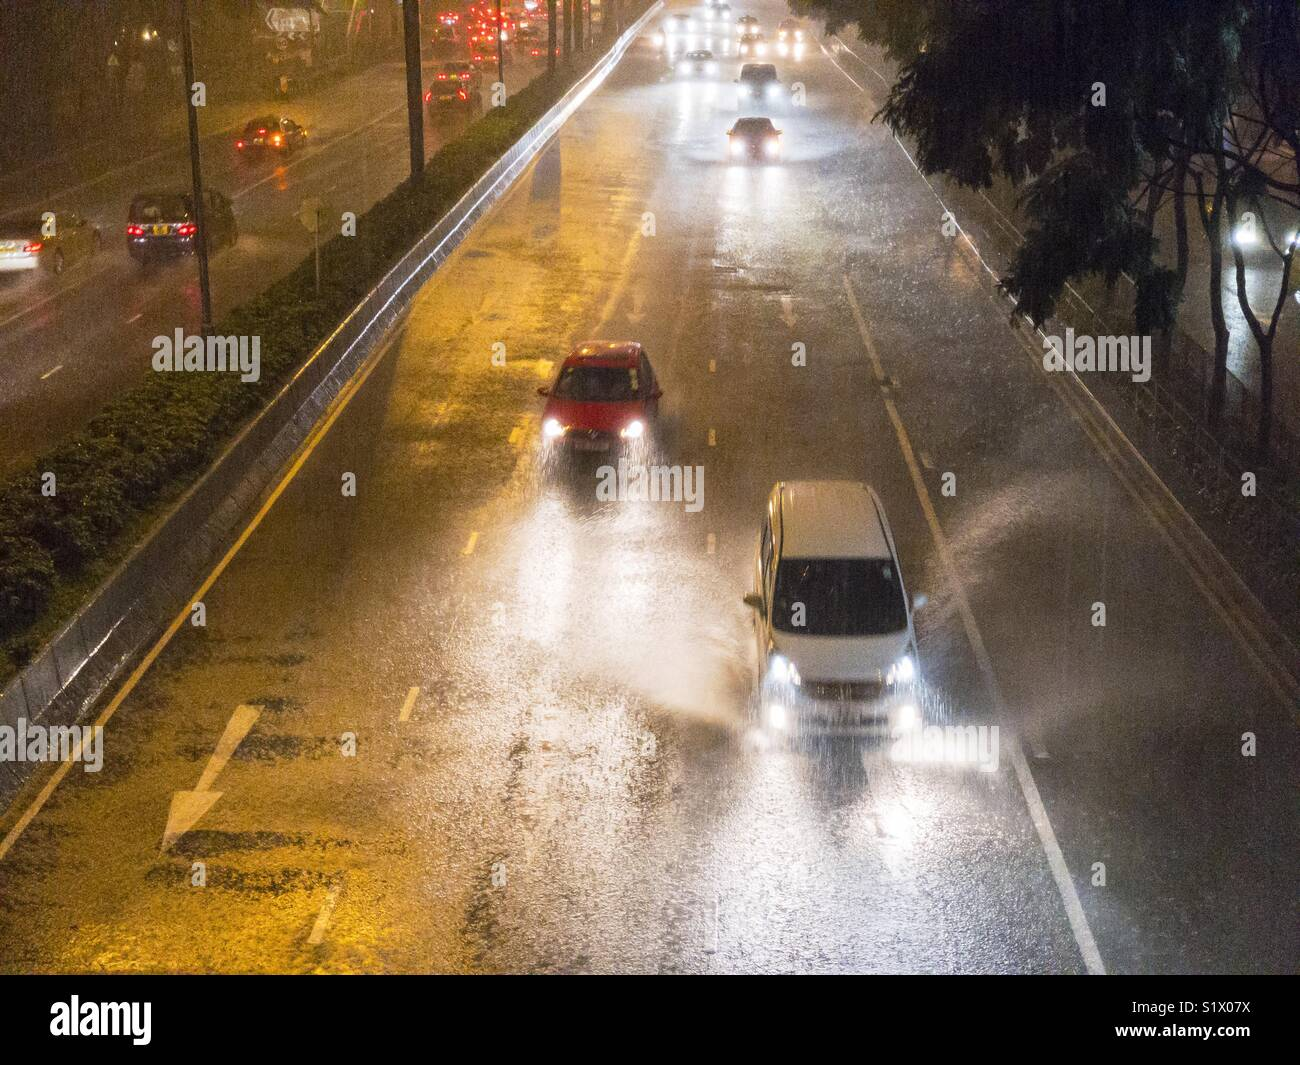 Blurred motion of car on street during rainy - Stock Image